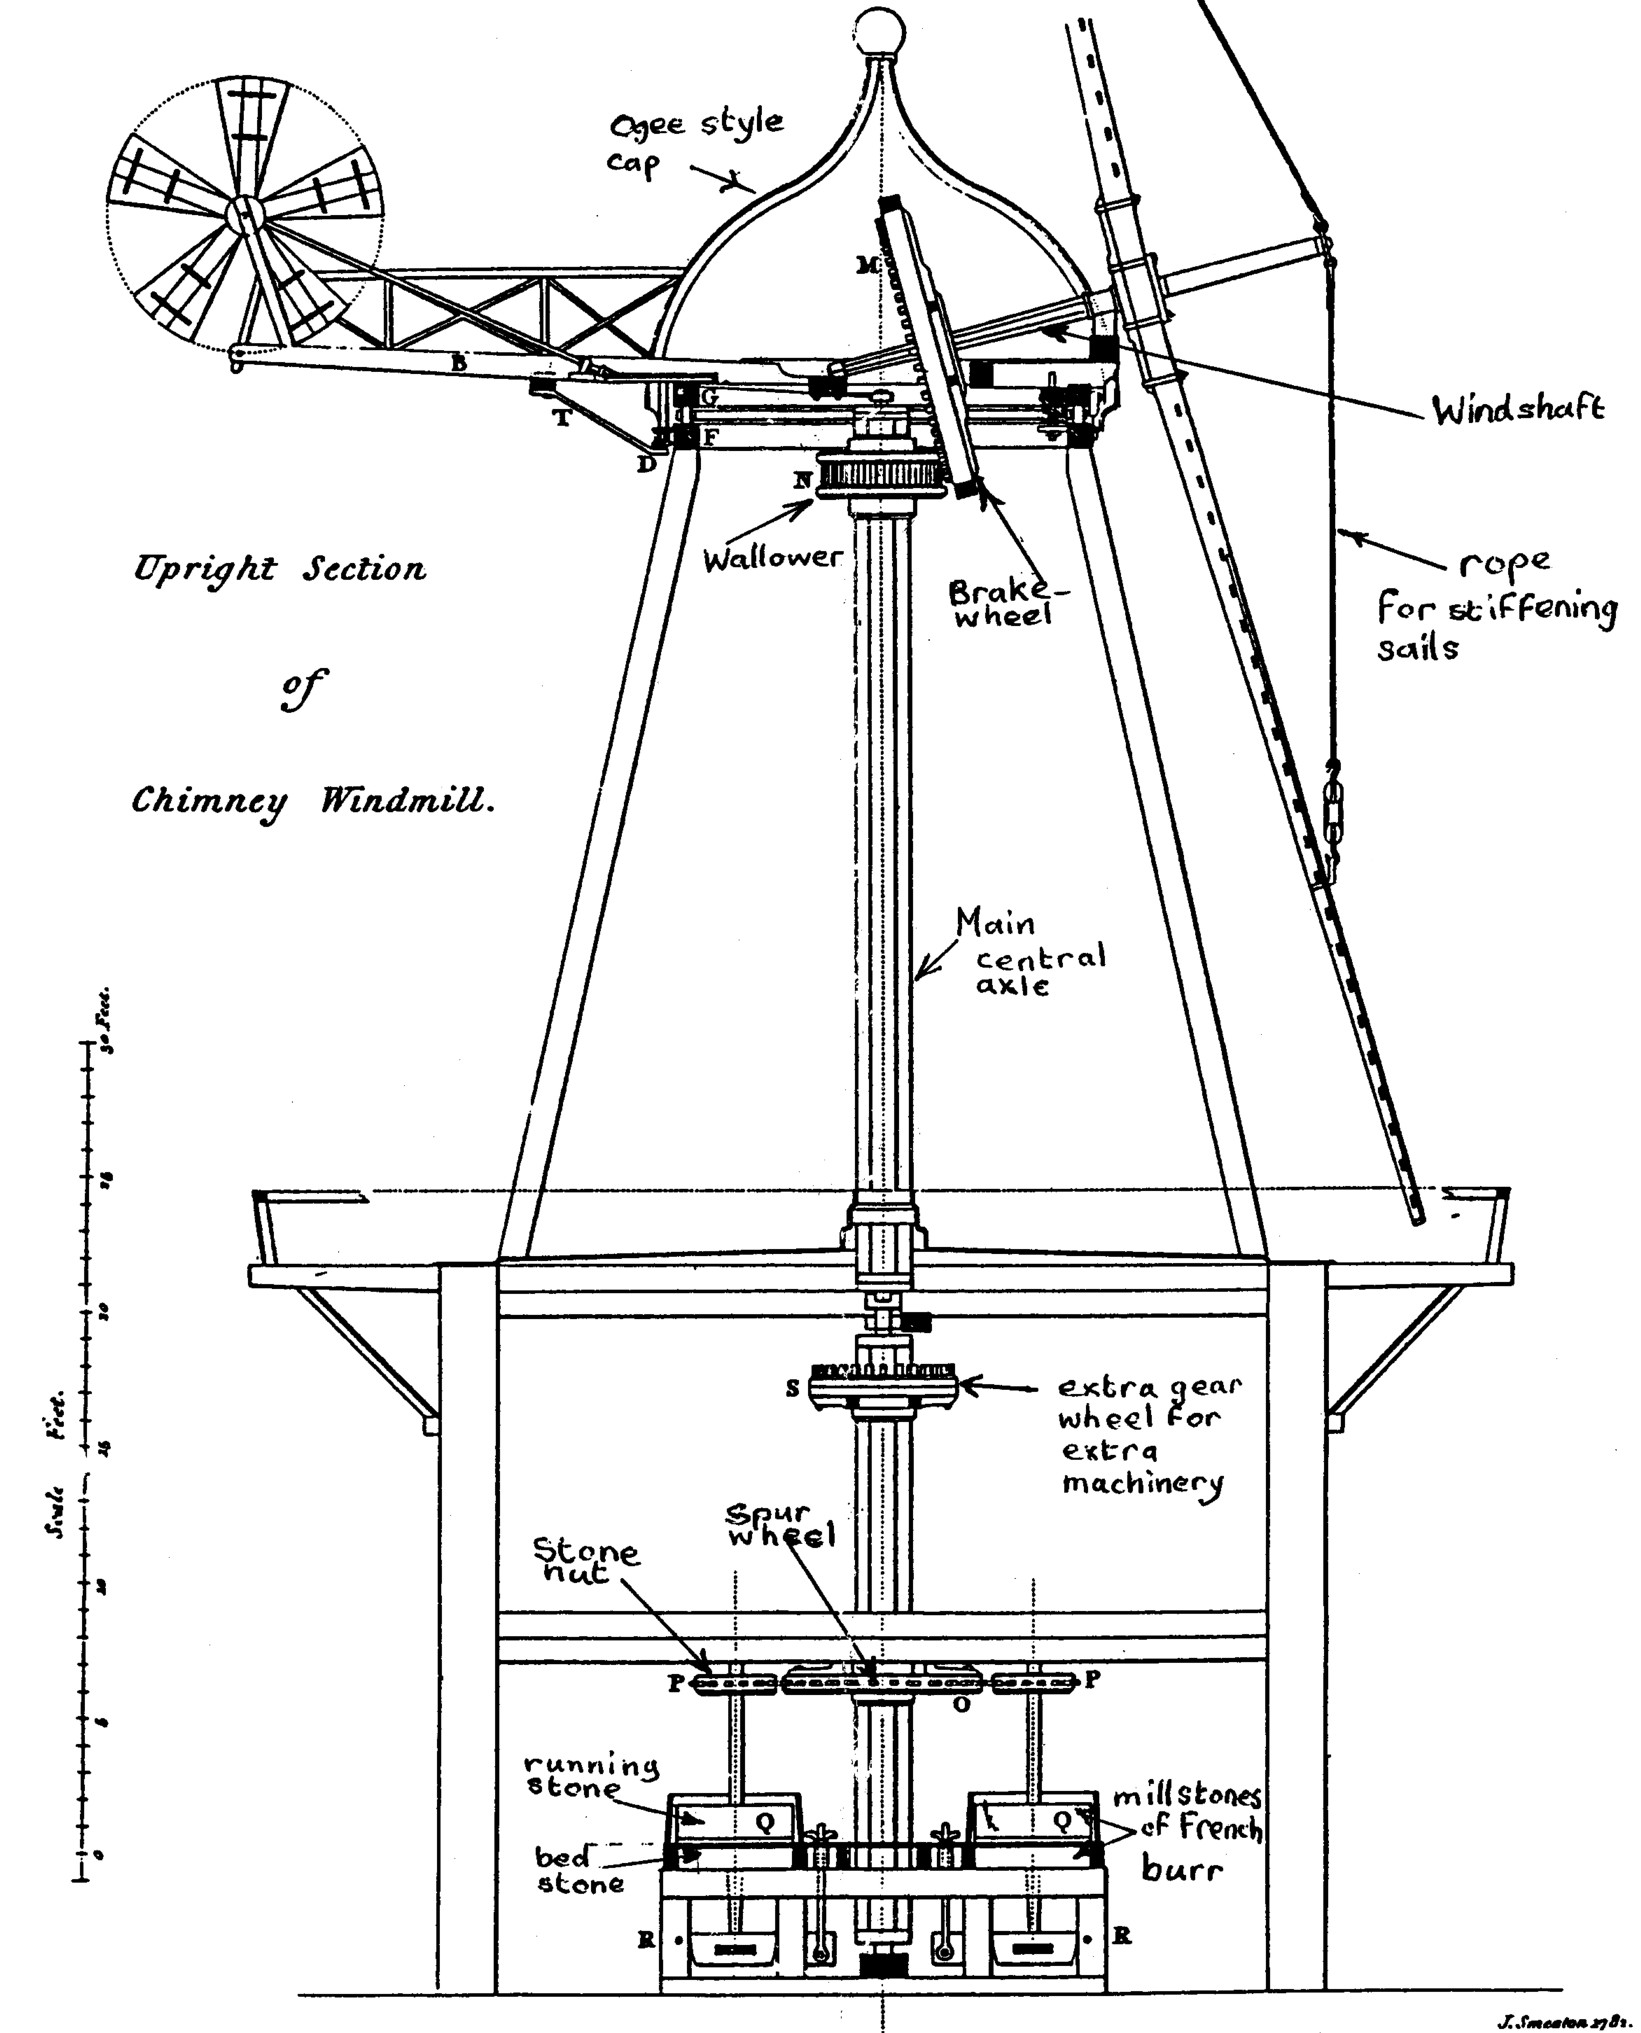 Labelled Diagram Of Windmill